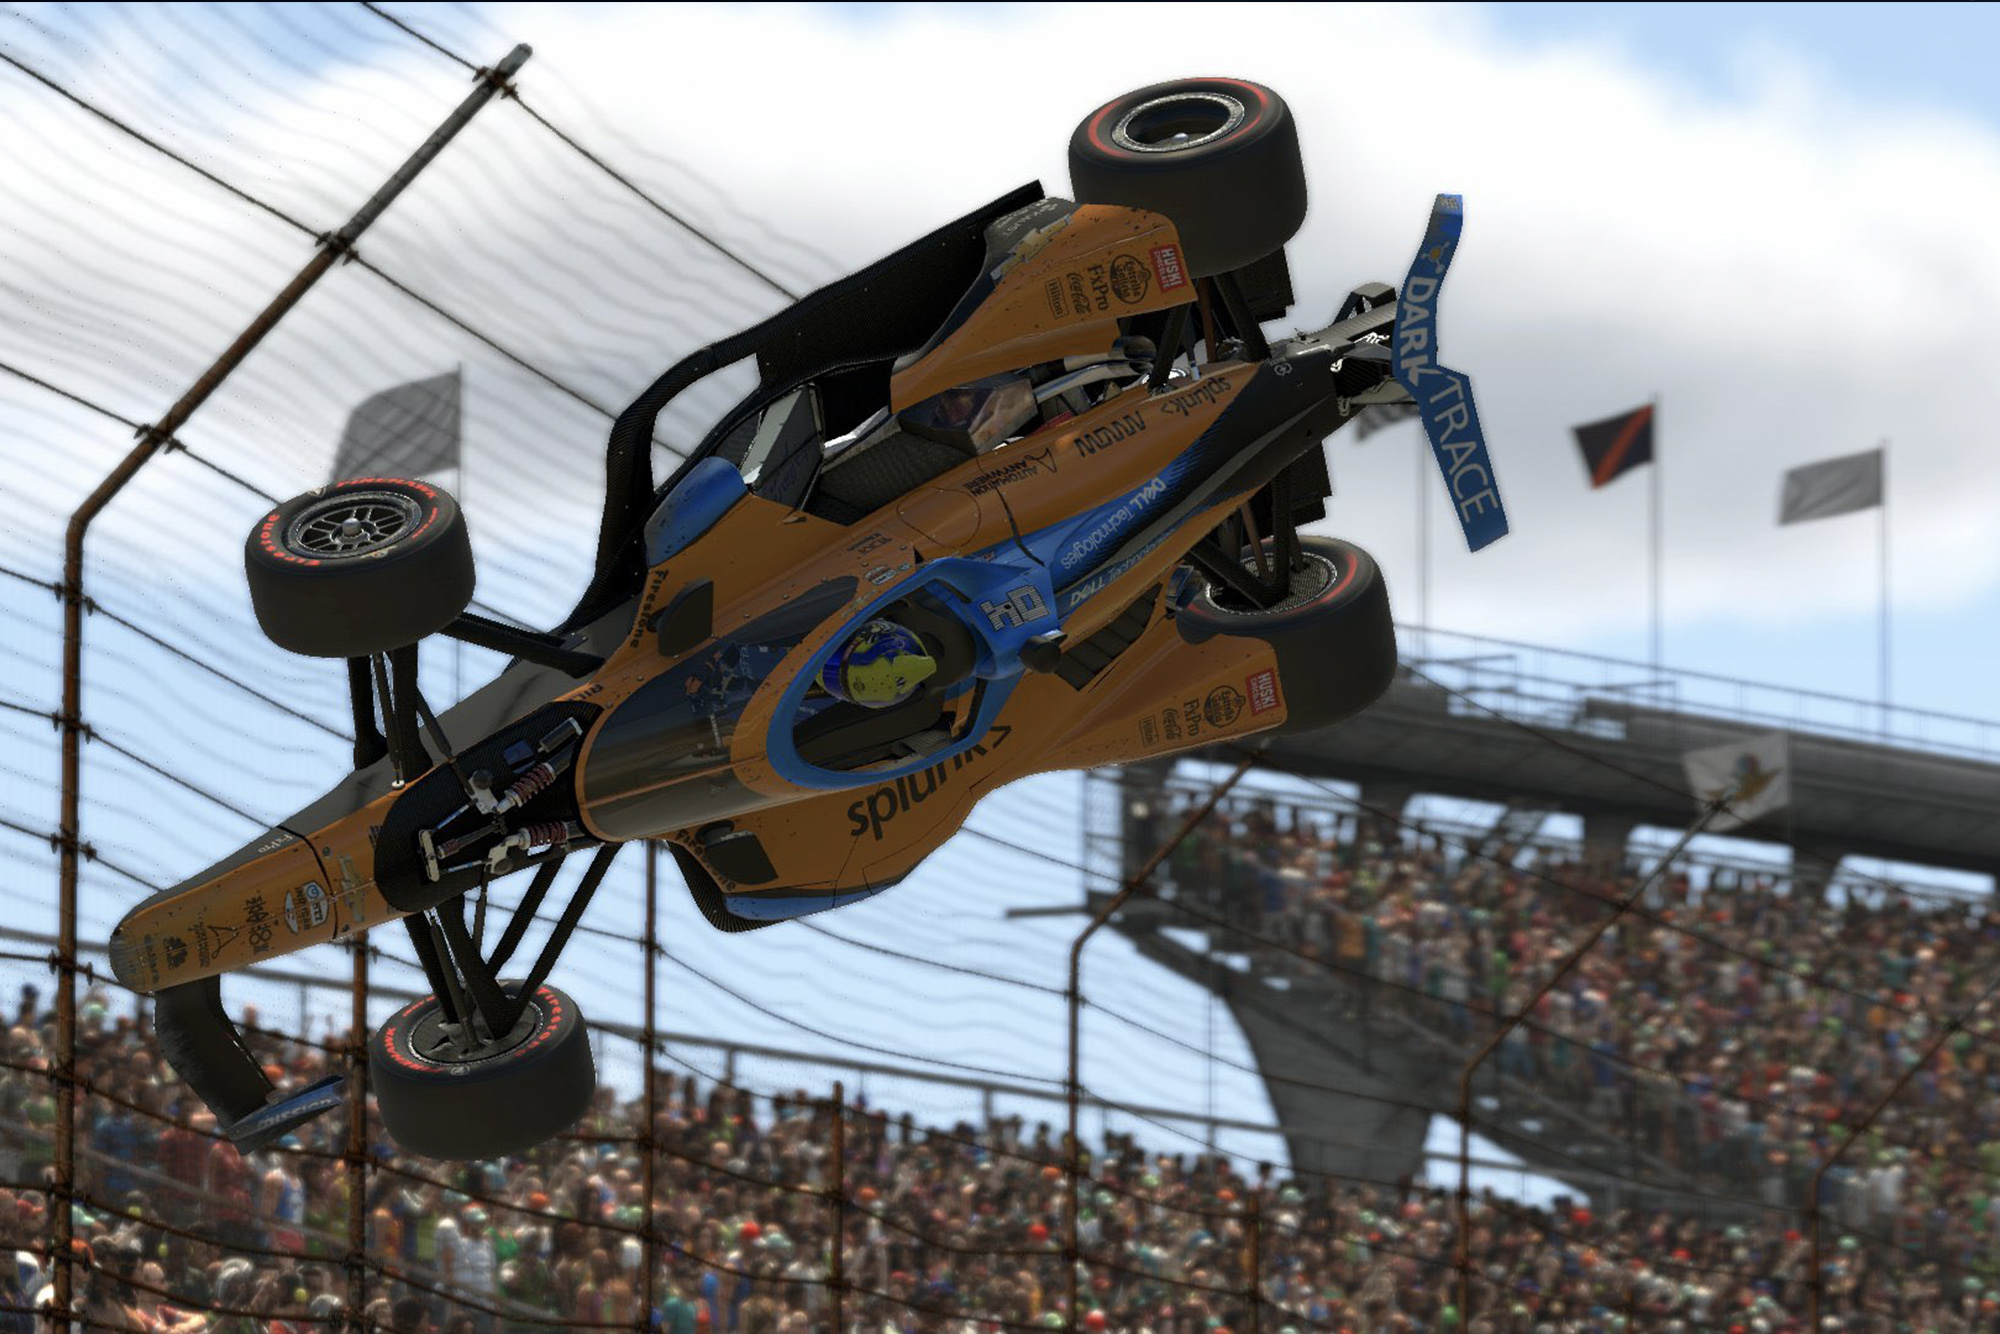 Pagenaud takes out Lando Norris in virtual Indy race & spins into real-world strife